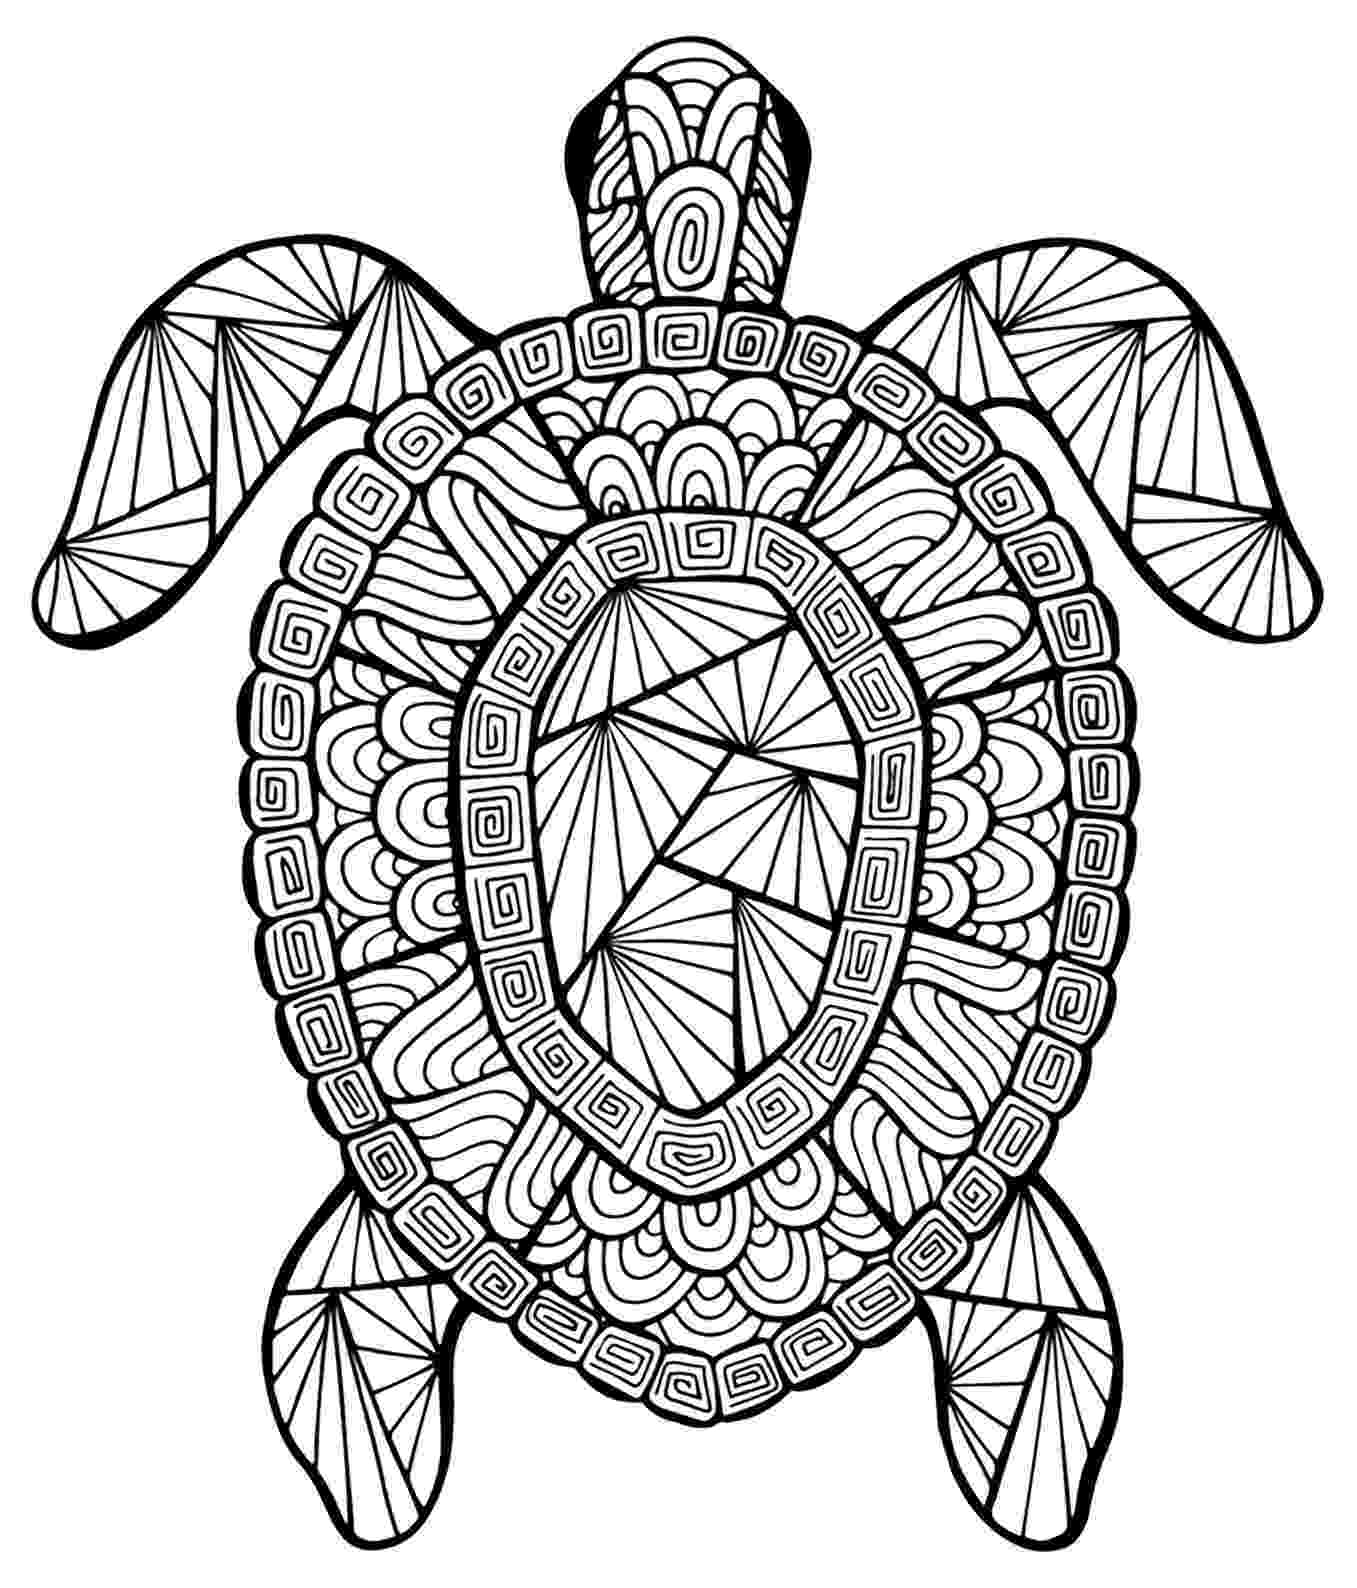 animal pictures coloring pages free printable ocean coloring pages for kids coloring coloring pictures pages animal